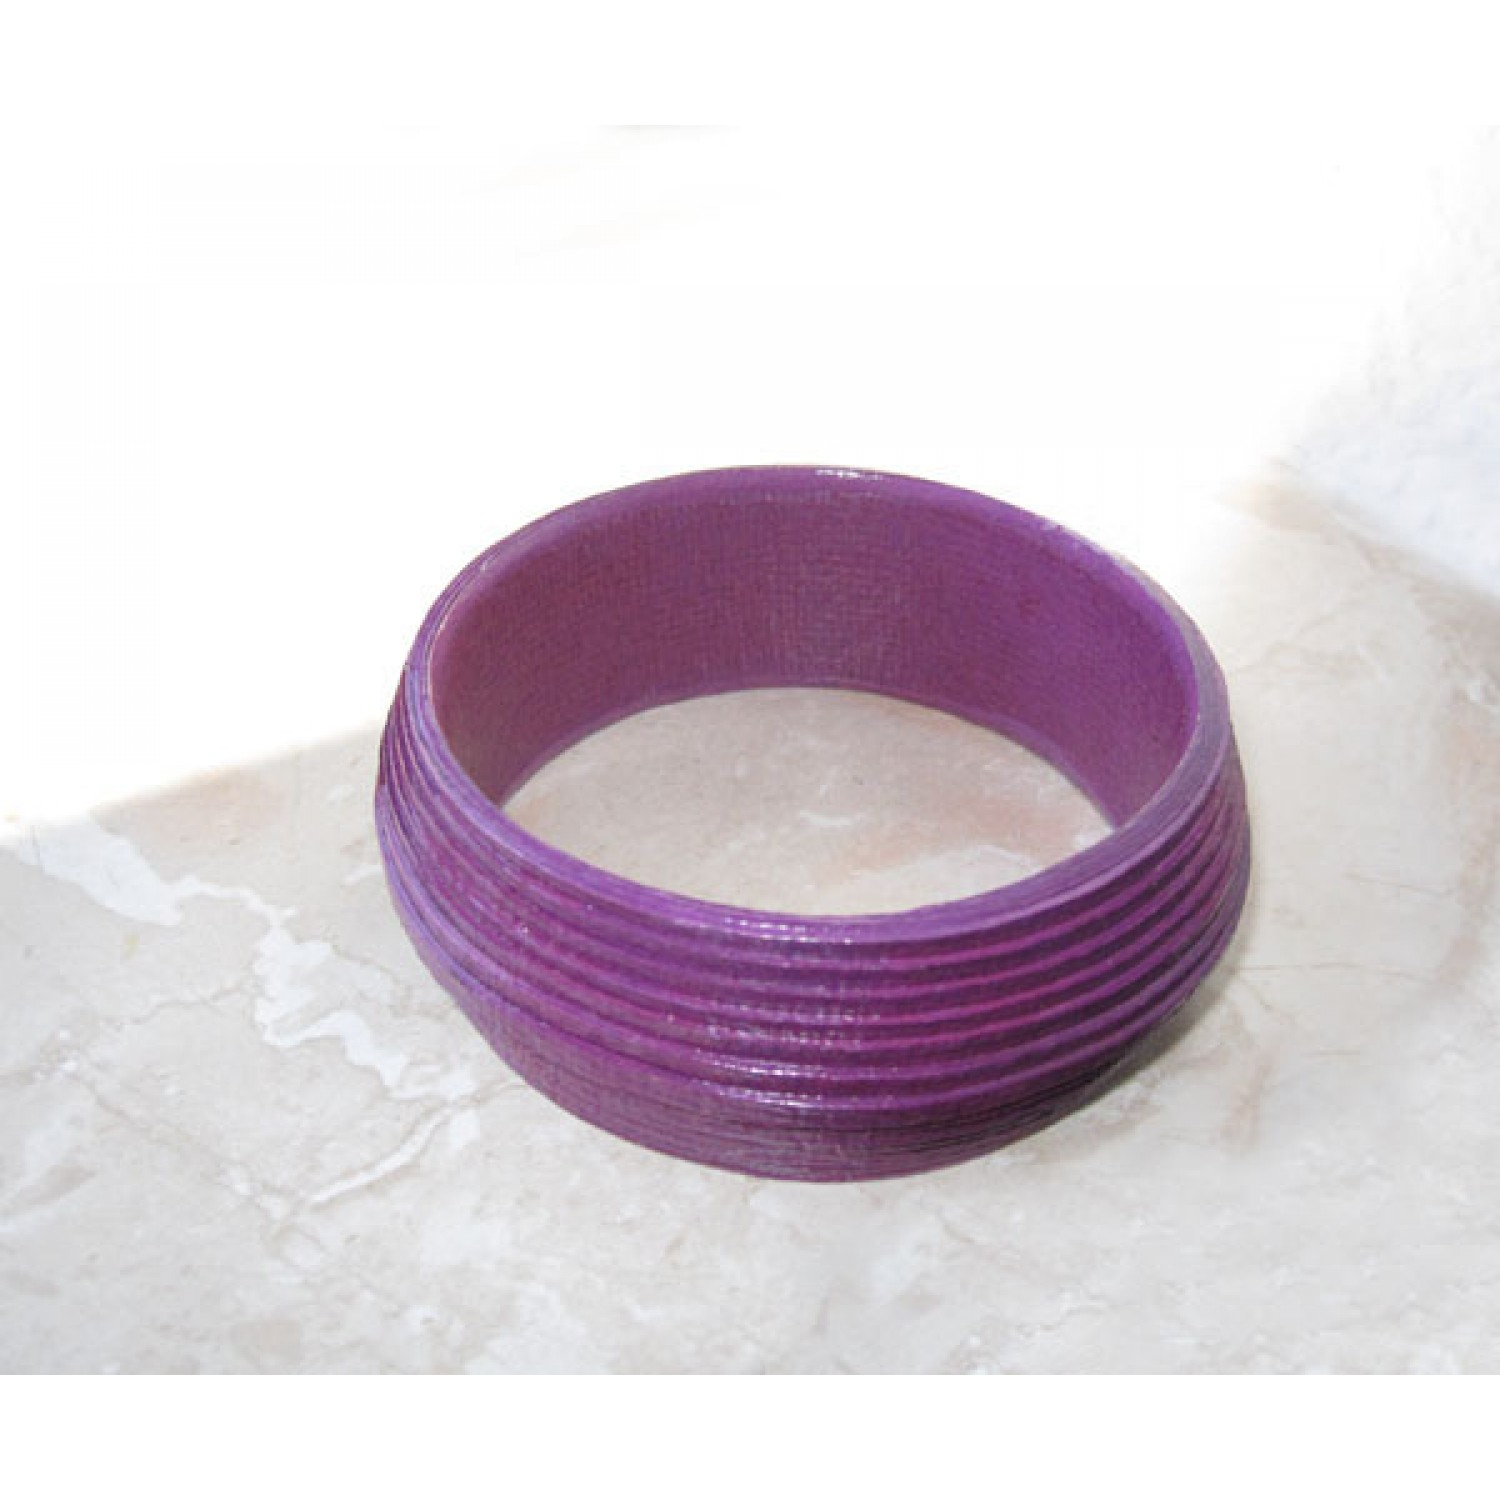 Elegant Eco Bracelet in Purple | Sundara Paper Art